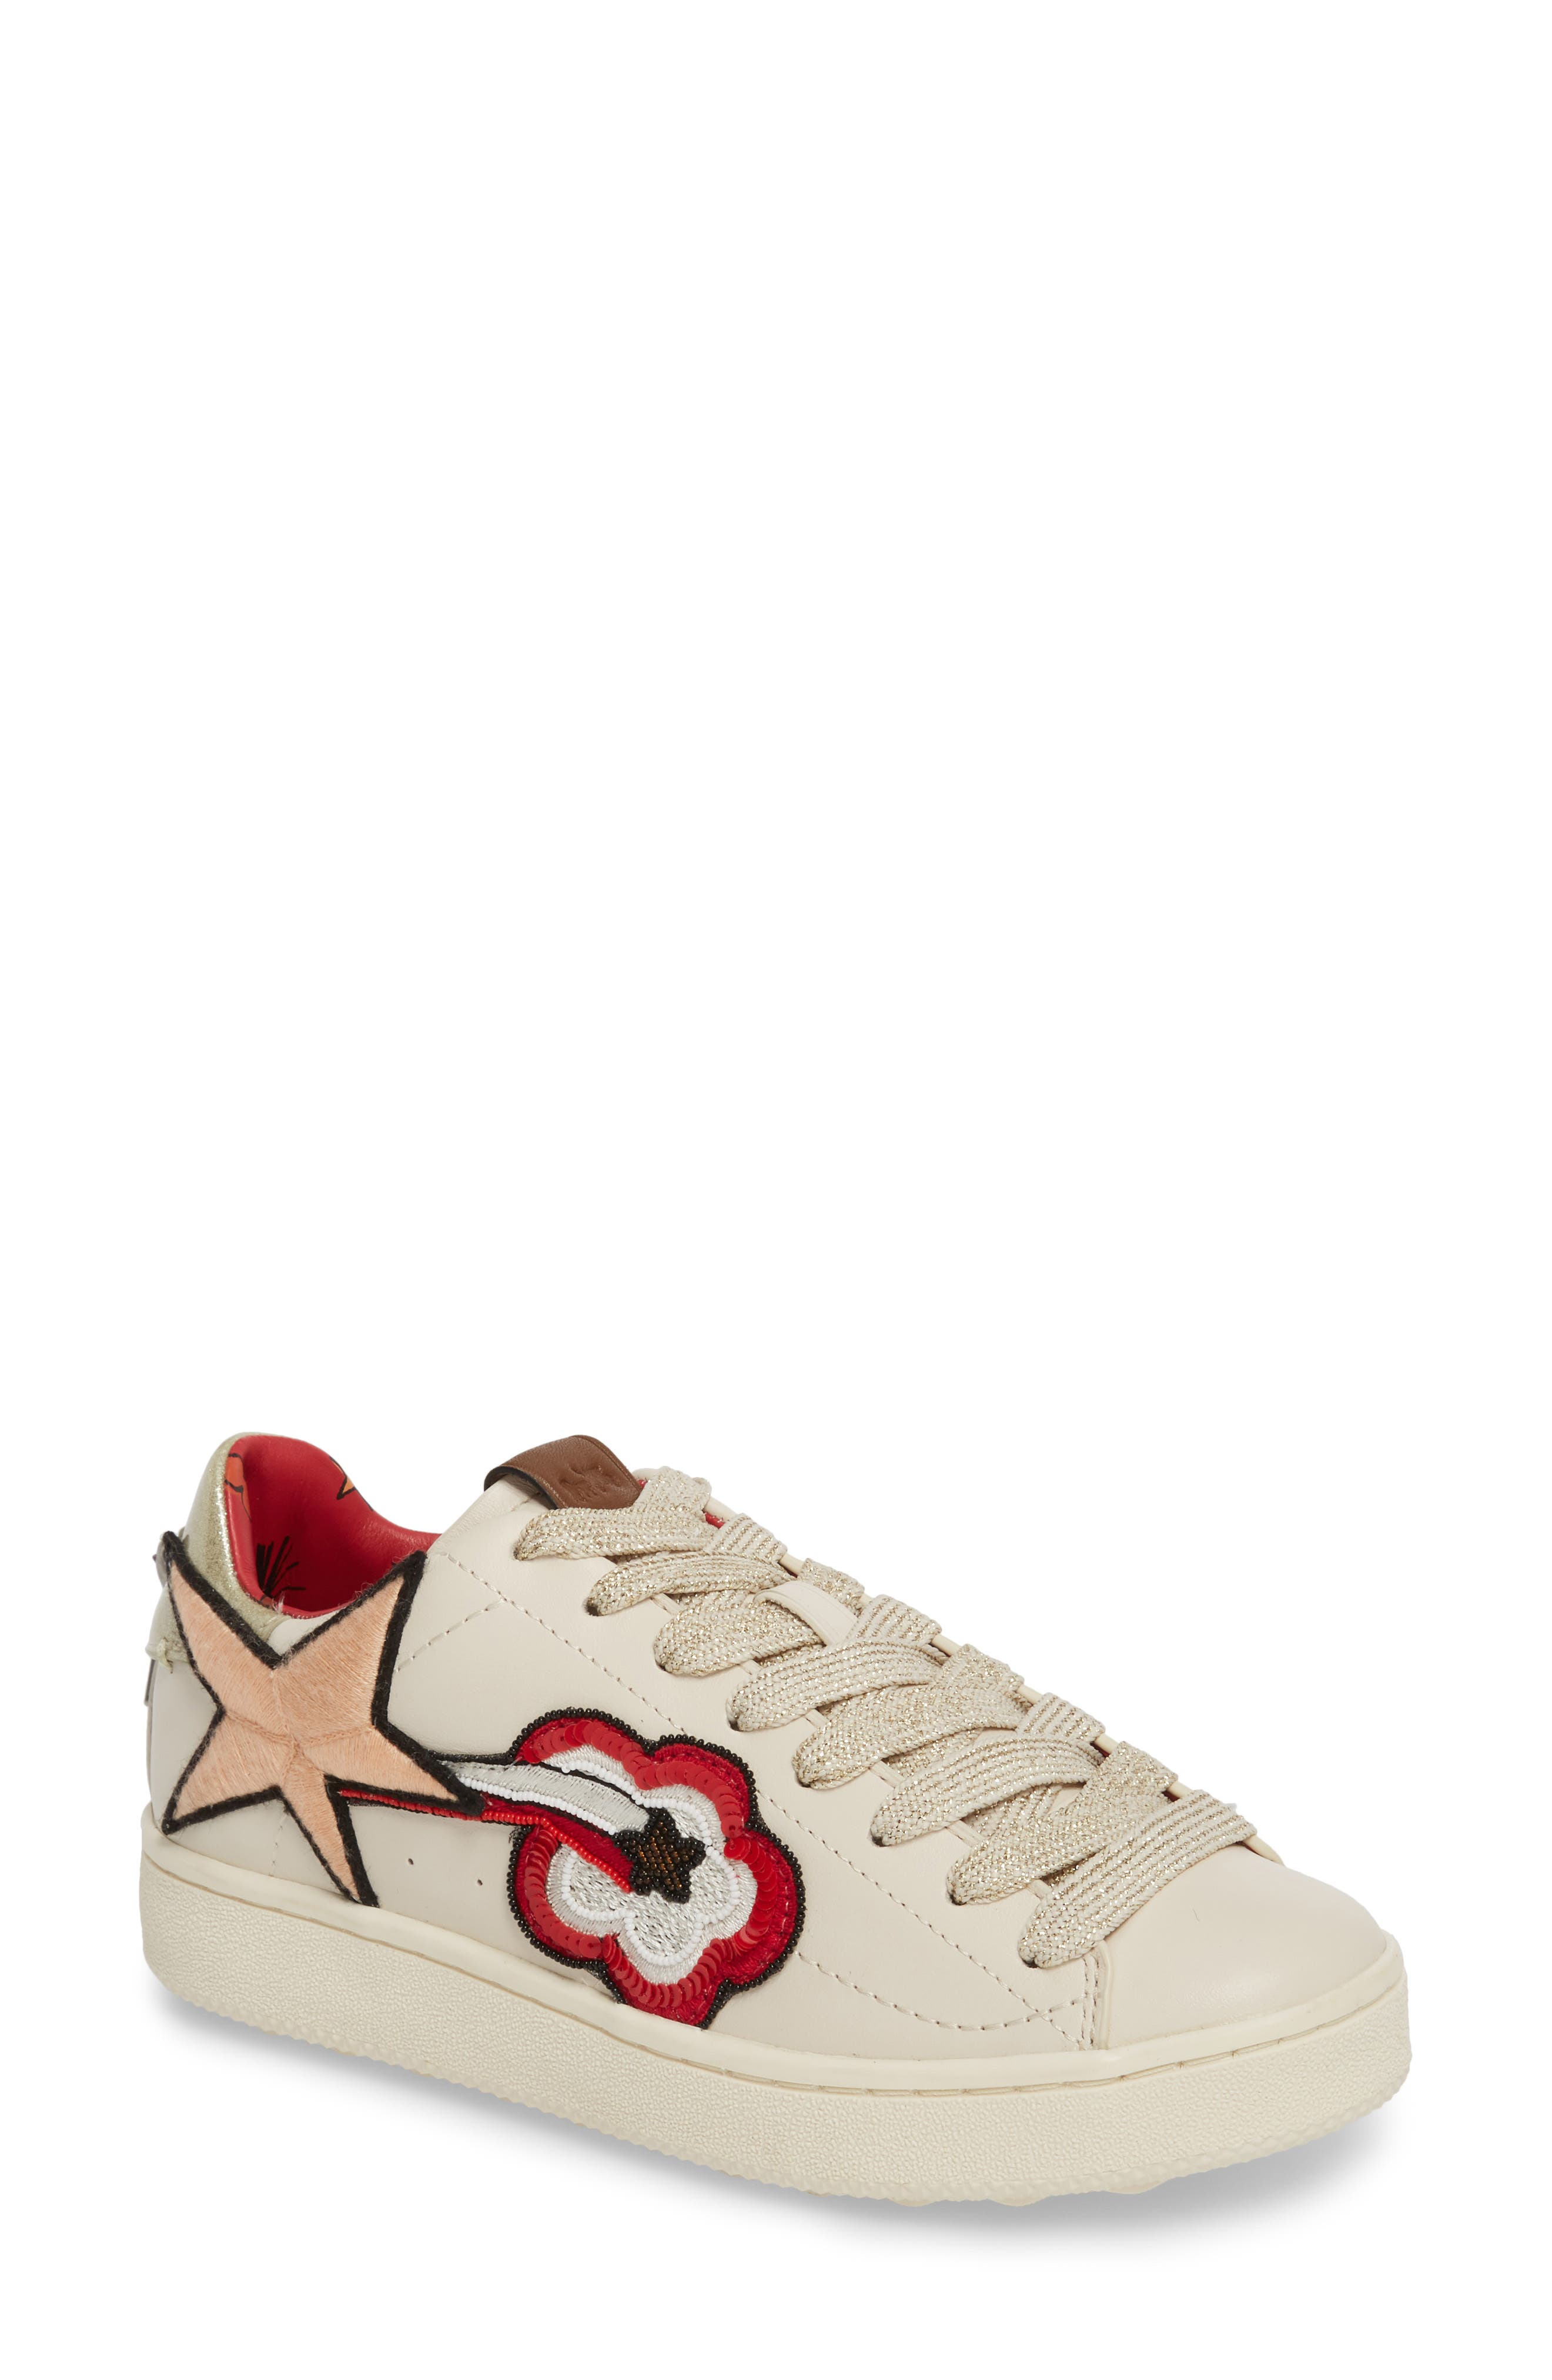 Shooting Star Sneaker,                         Main,                         color, Chalk Leather